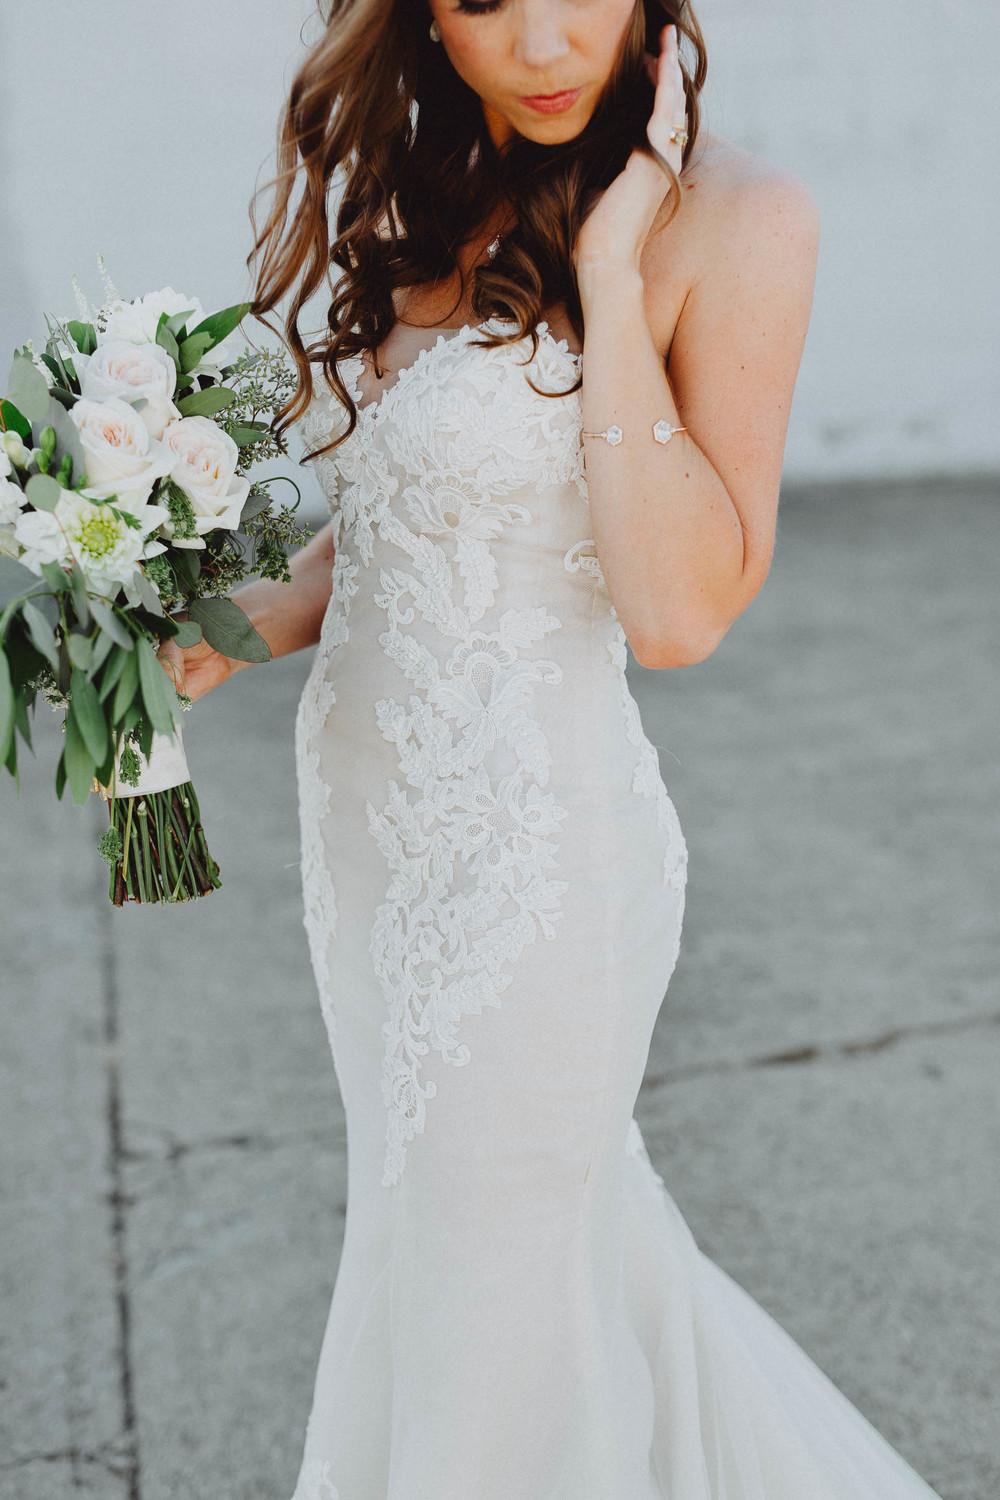 Gorgeous bride wearing a lace wedding dress designed by Ines Di Santo.